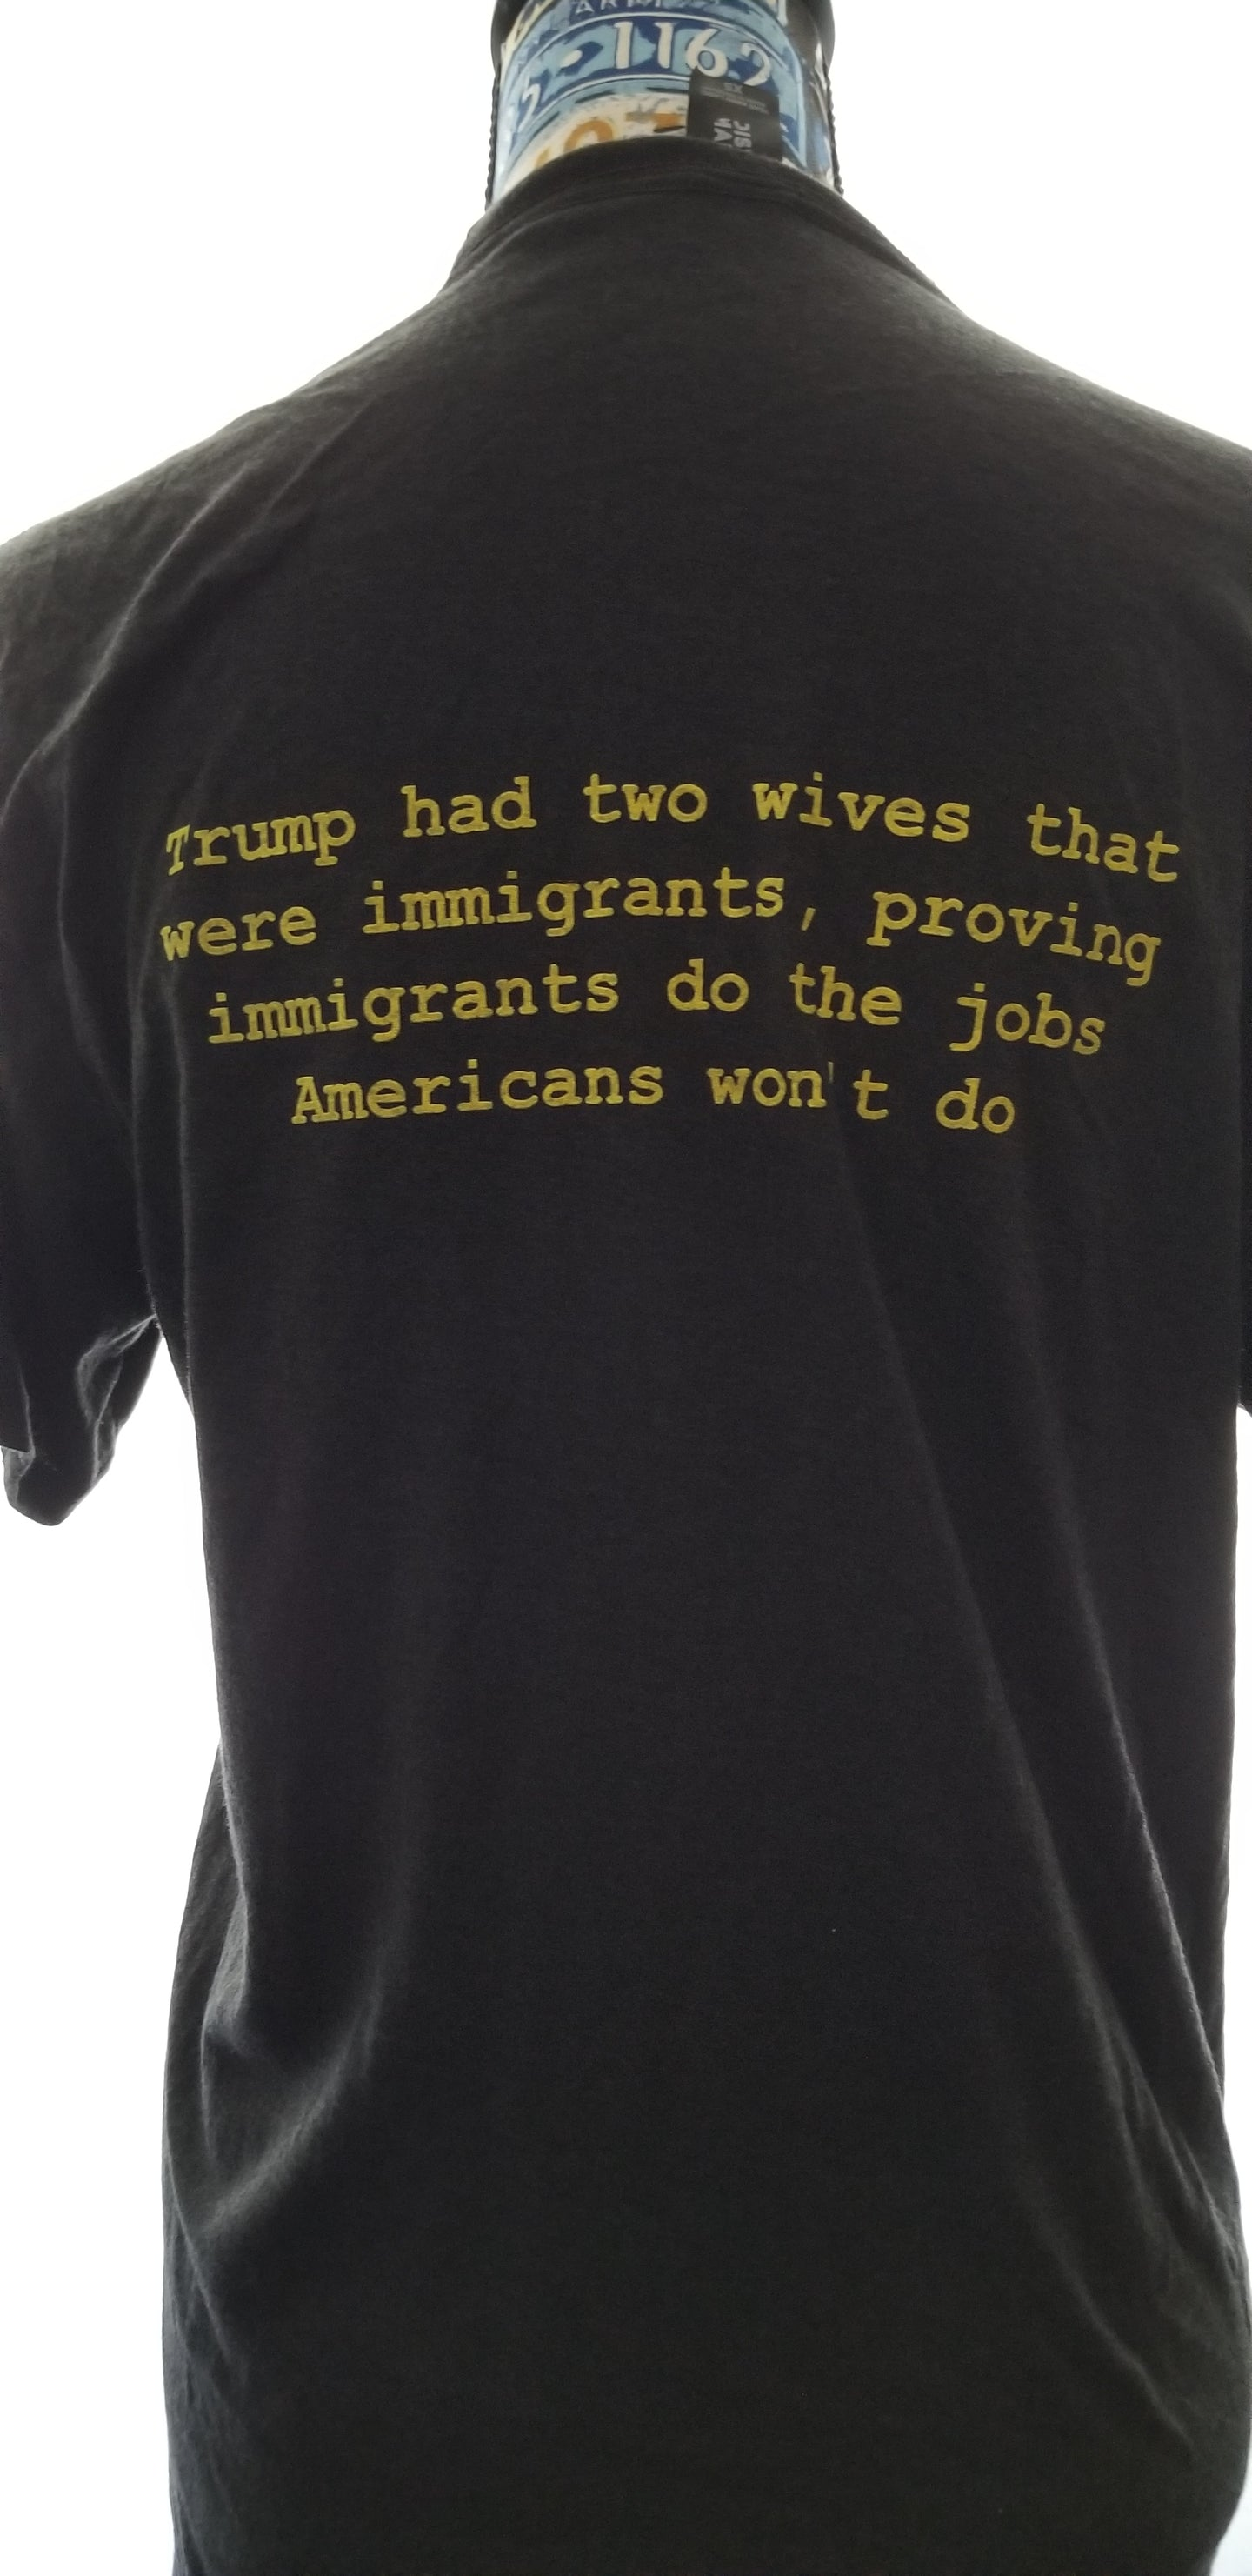 Trump had two wives that were immigrants